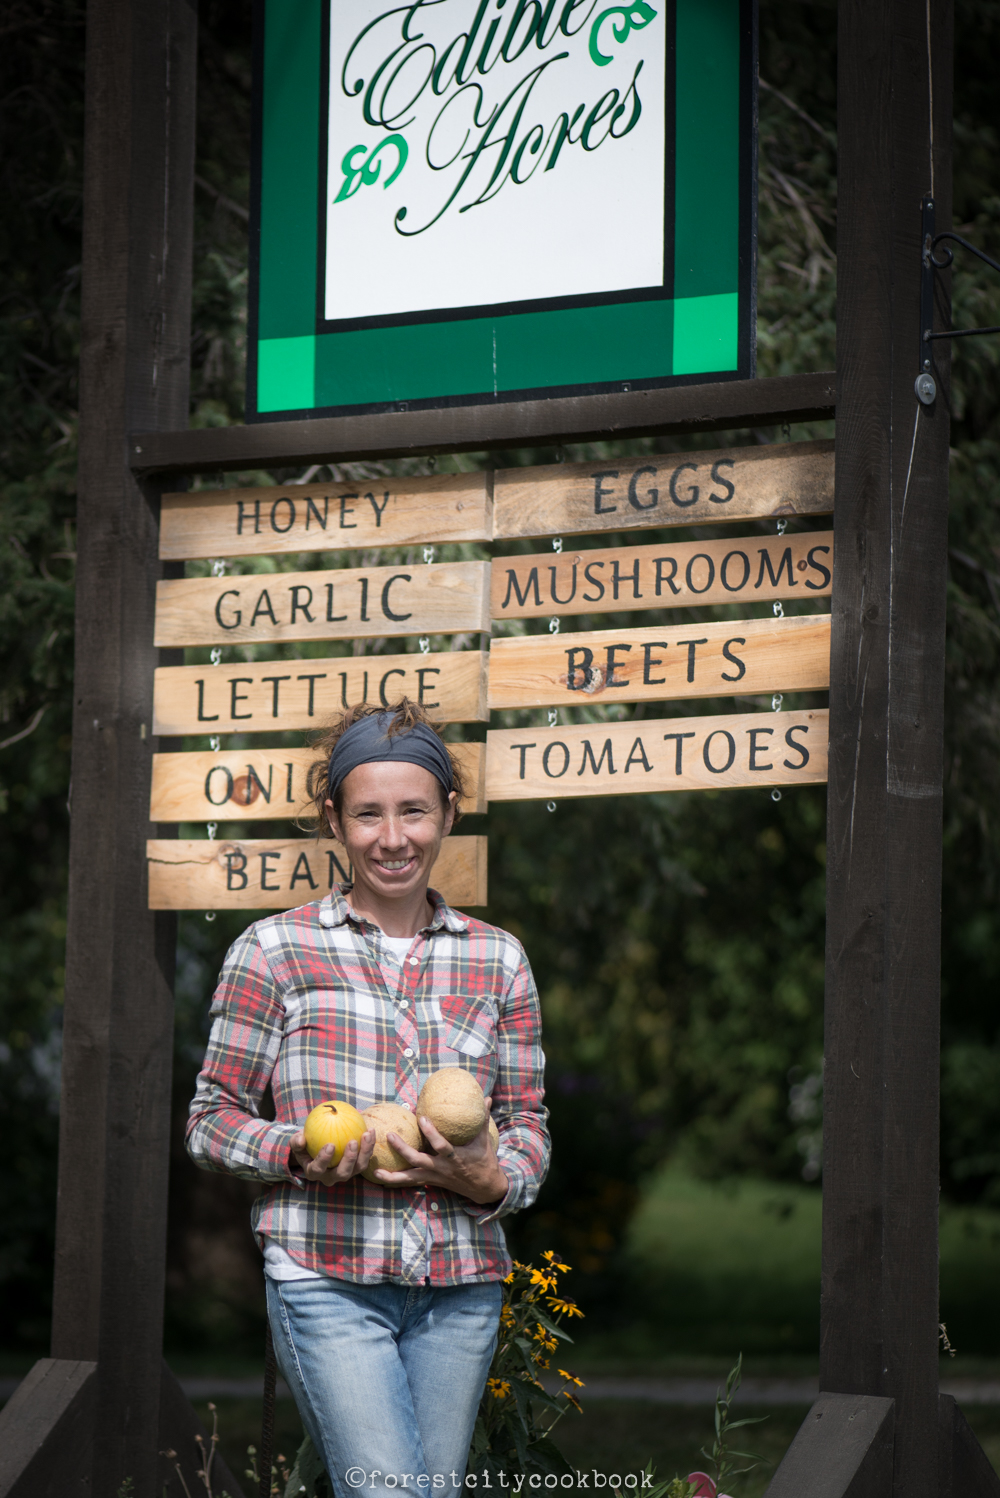 Forest City Cookbook - Edible Acres - Organic vegetables, eggs, chicken and lamb - London Ontario